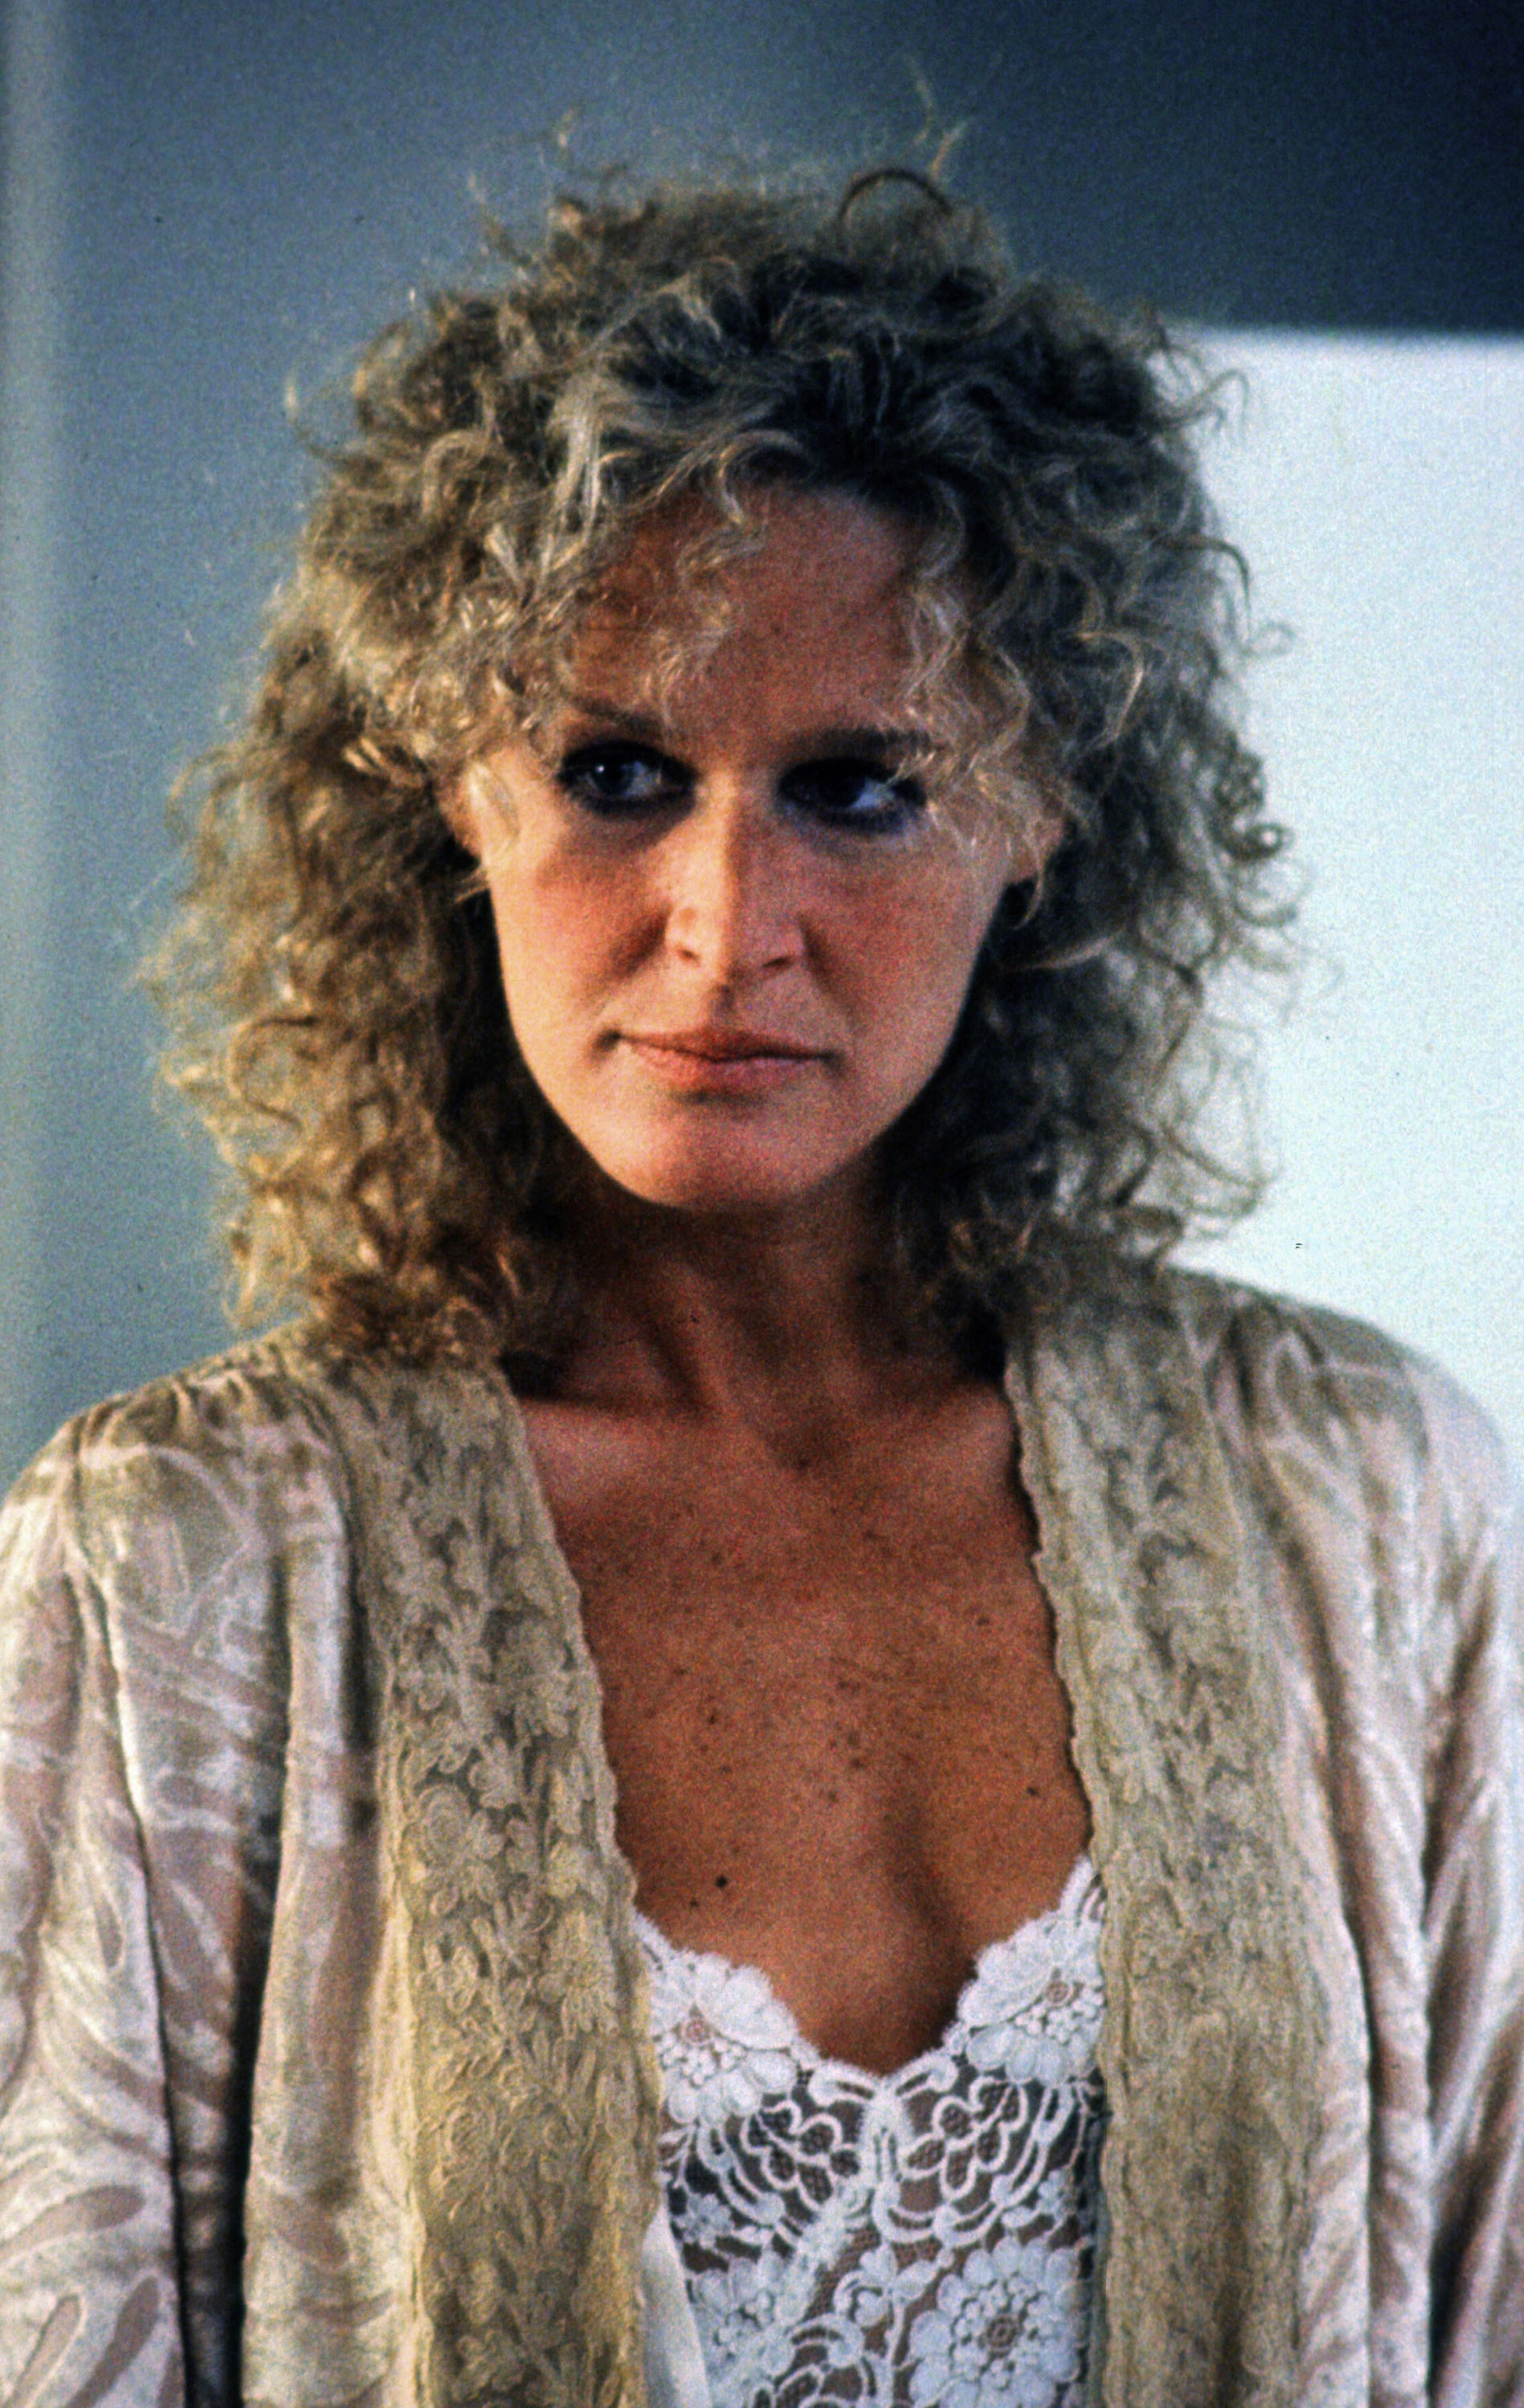 Glenn close in fatal attraction 02